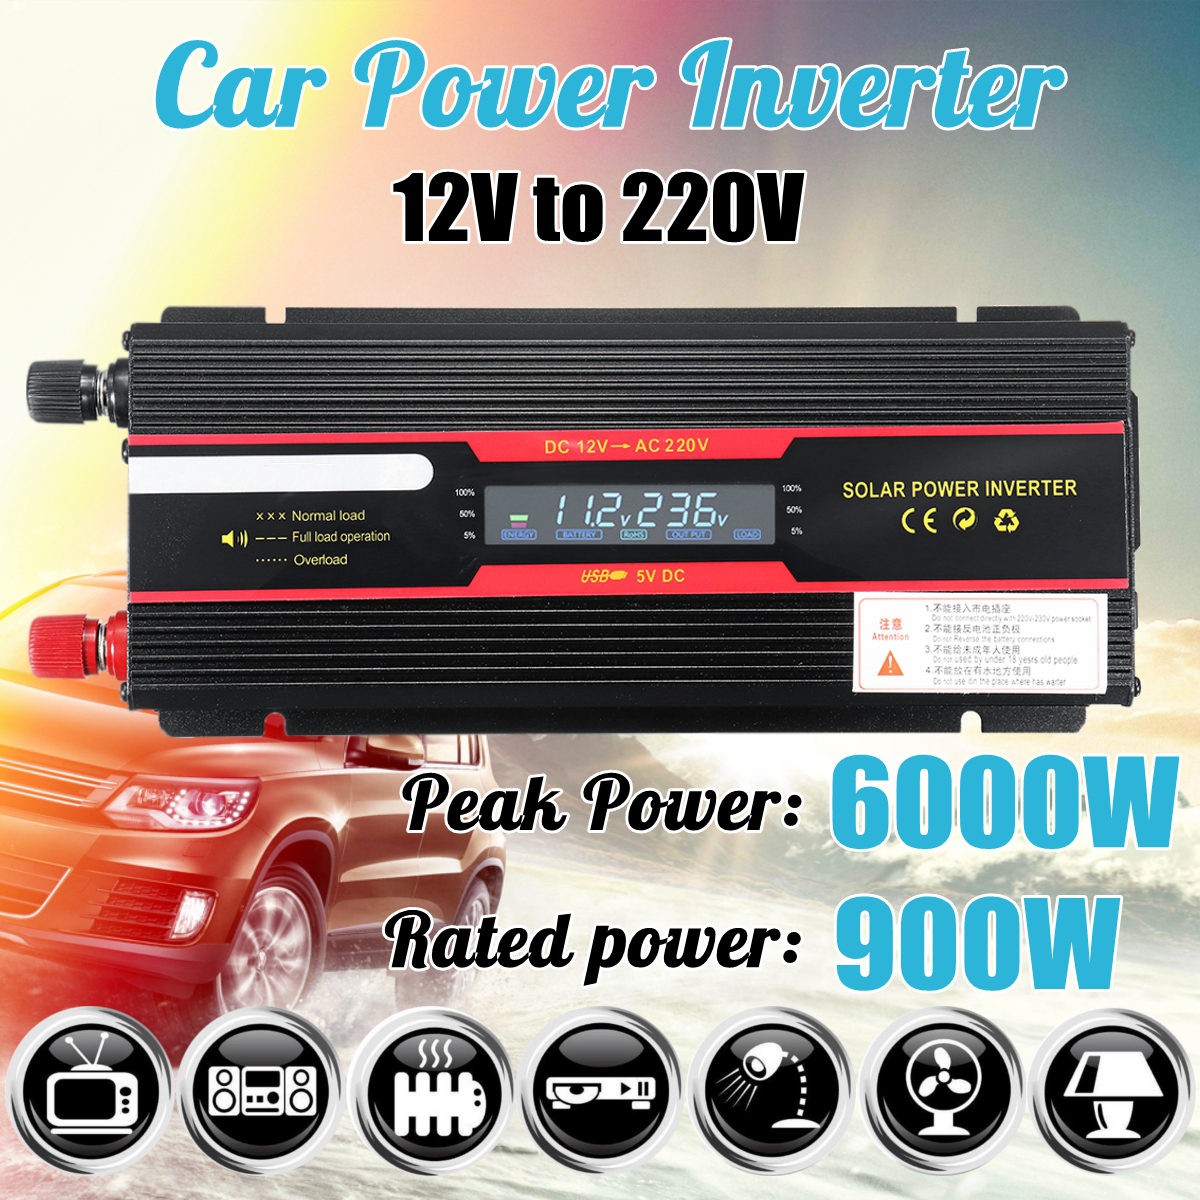 Car Inverter 12V 220V 6000W Peak Power Inverter Voltage Convertor Transformer 12V/24V To 110V/220V Inversor + LCD Display